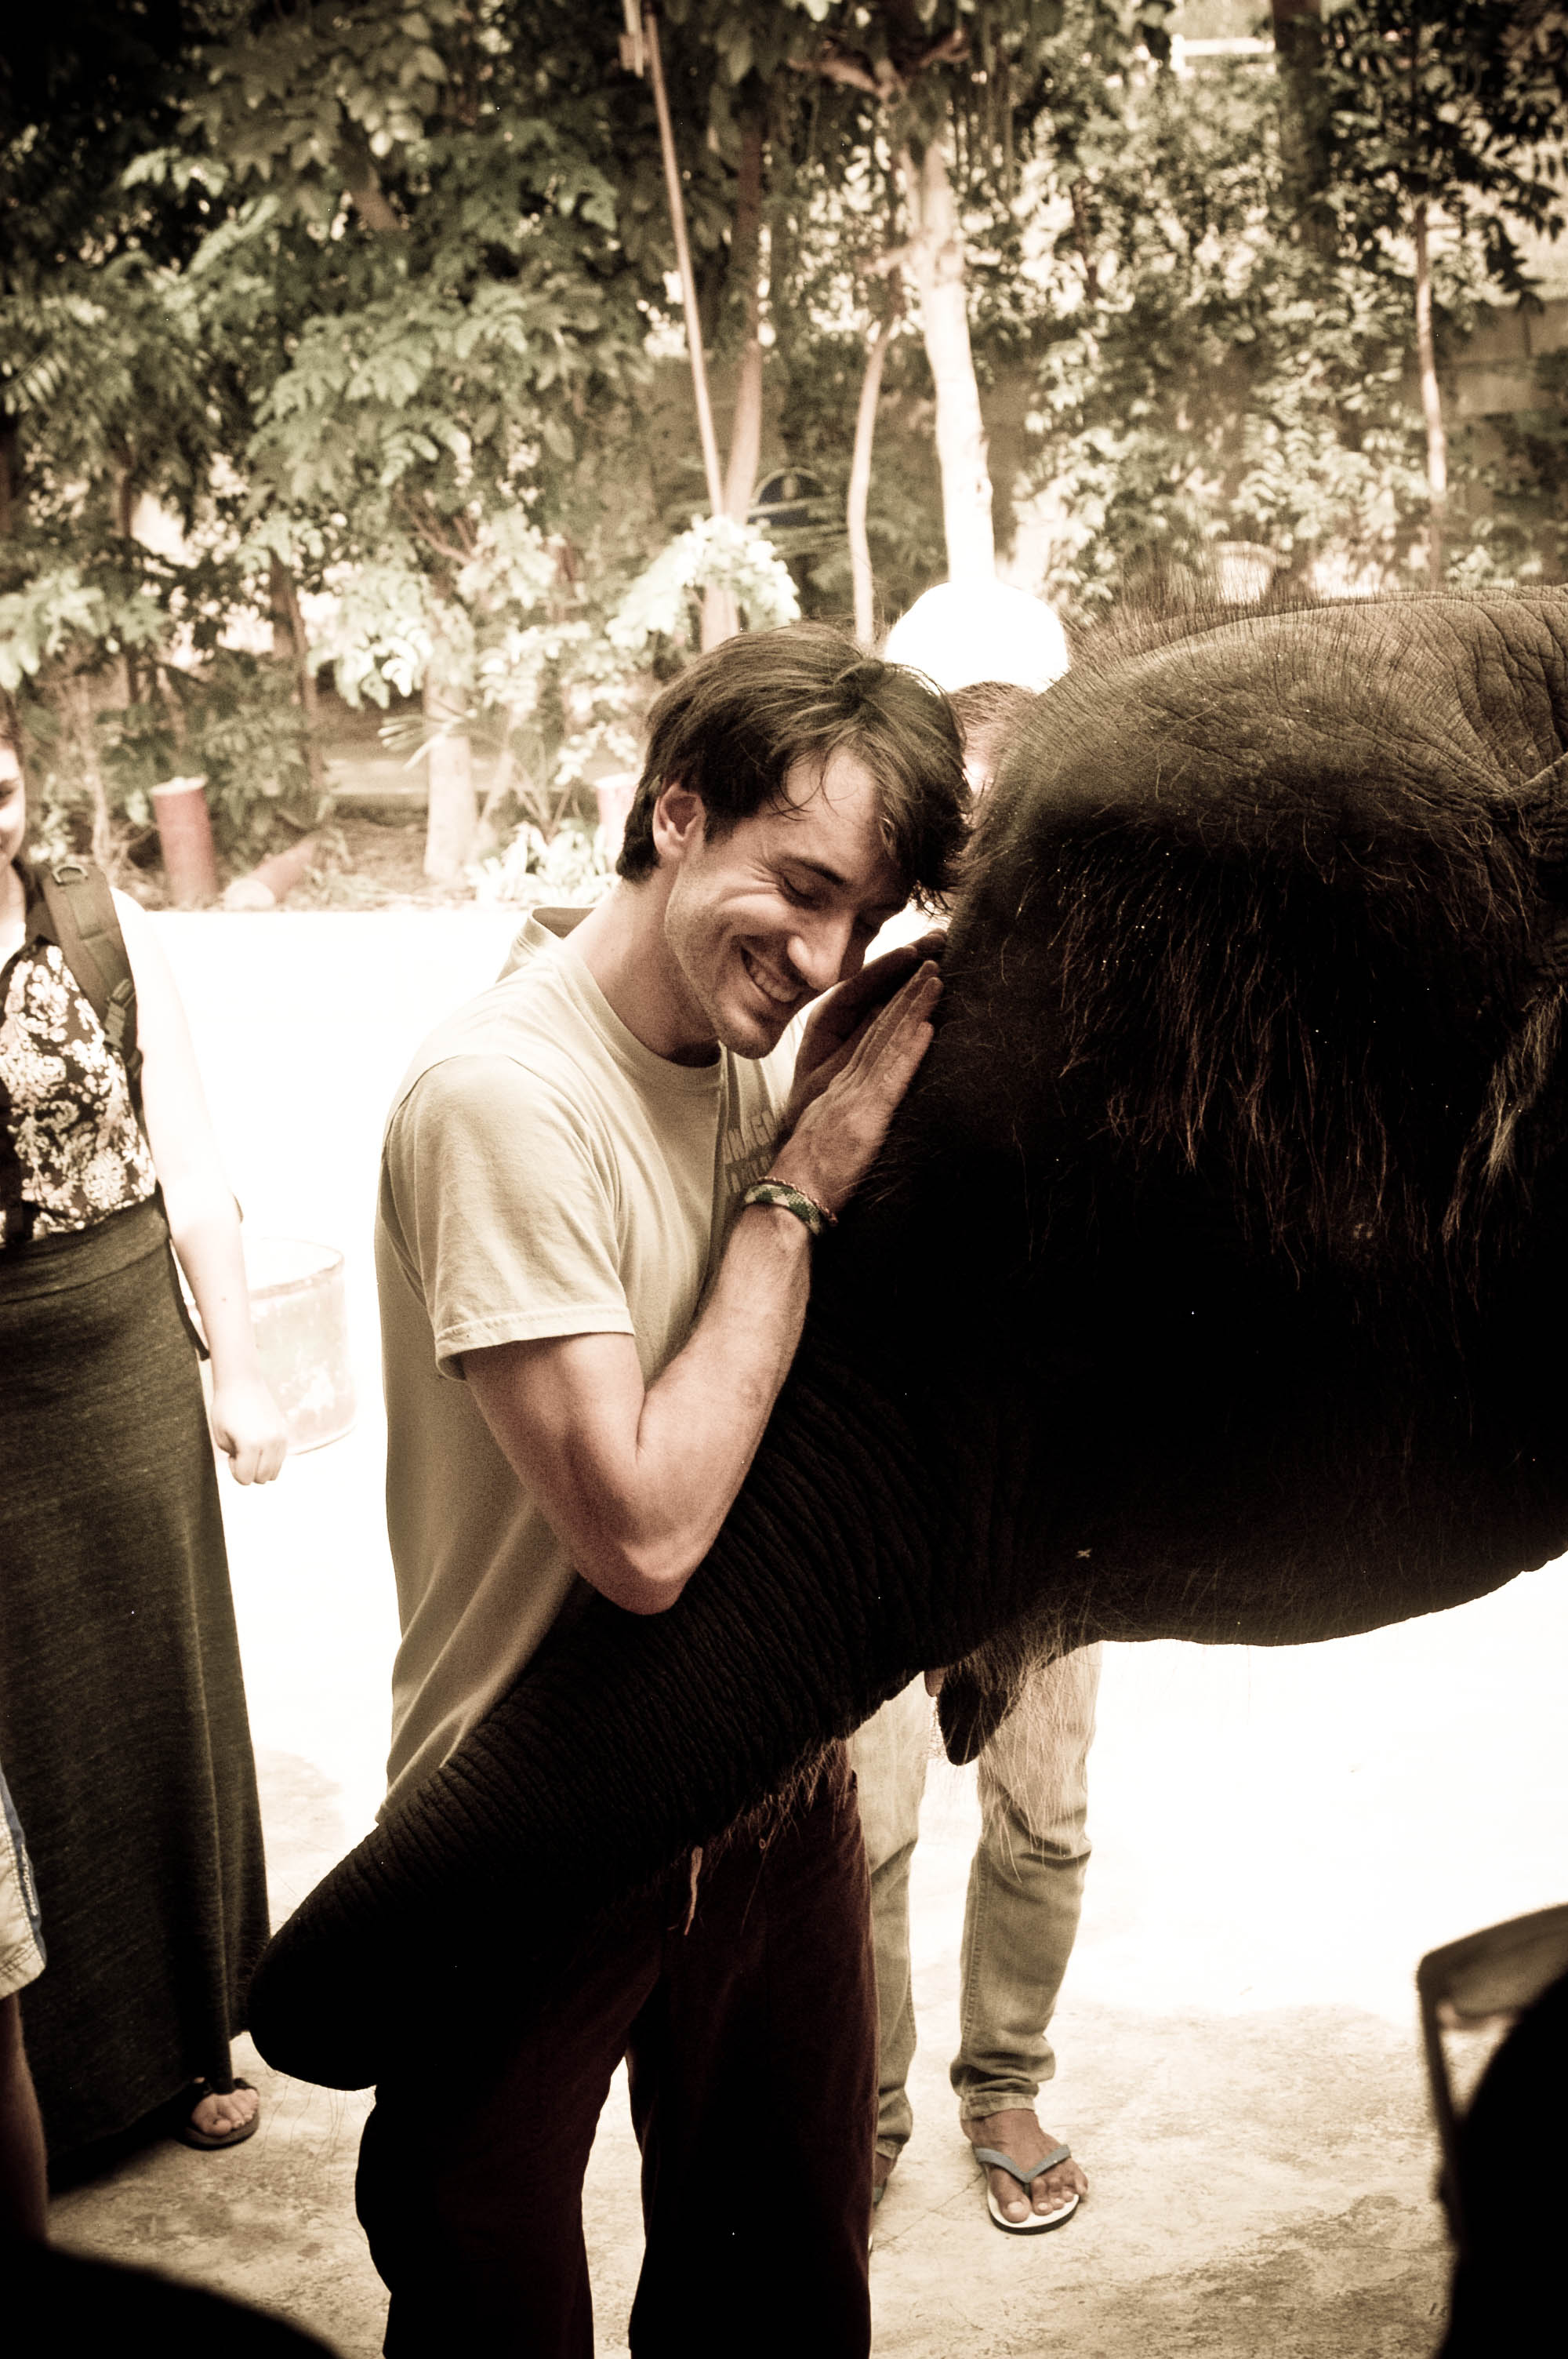 Got a hug from an elephant. My life is just a little bit more complete